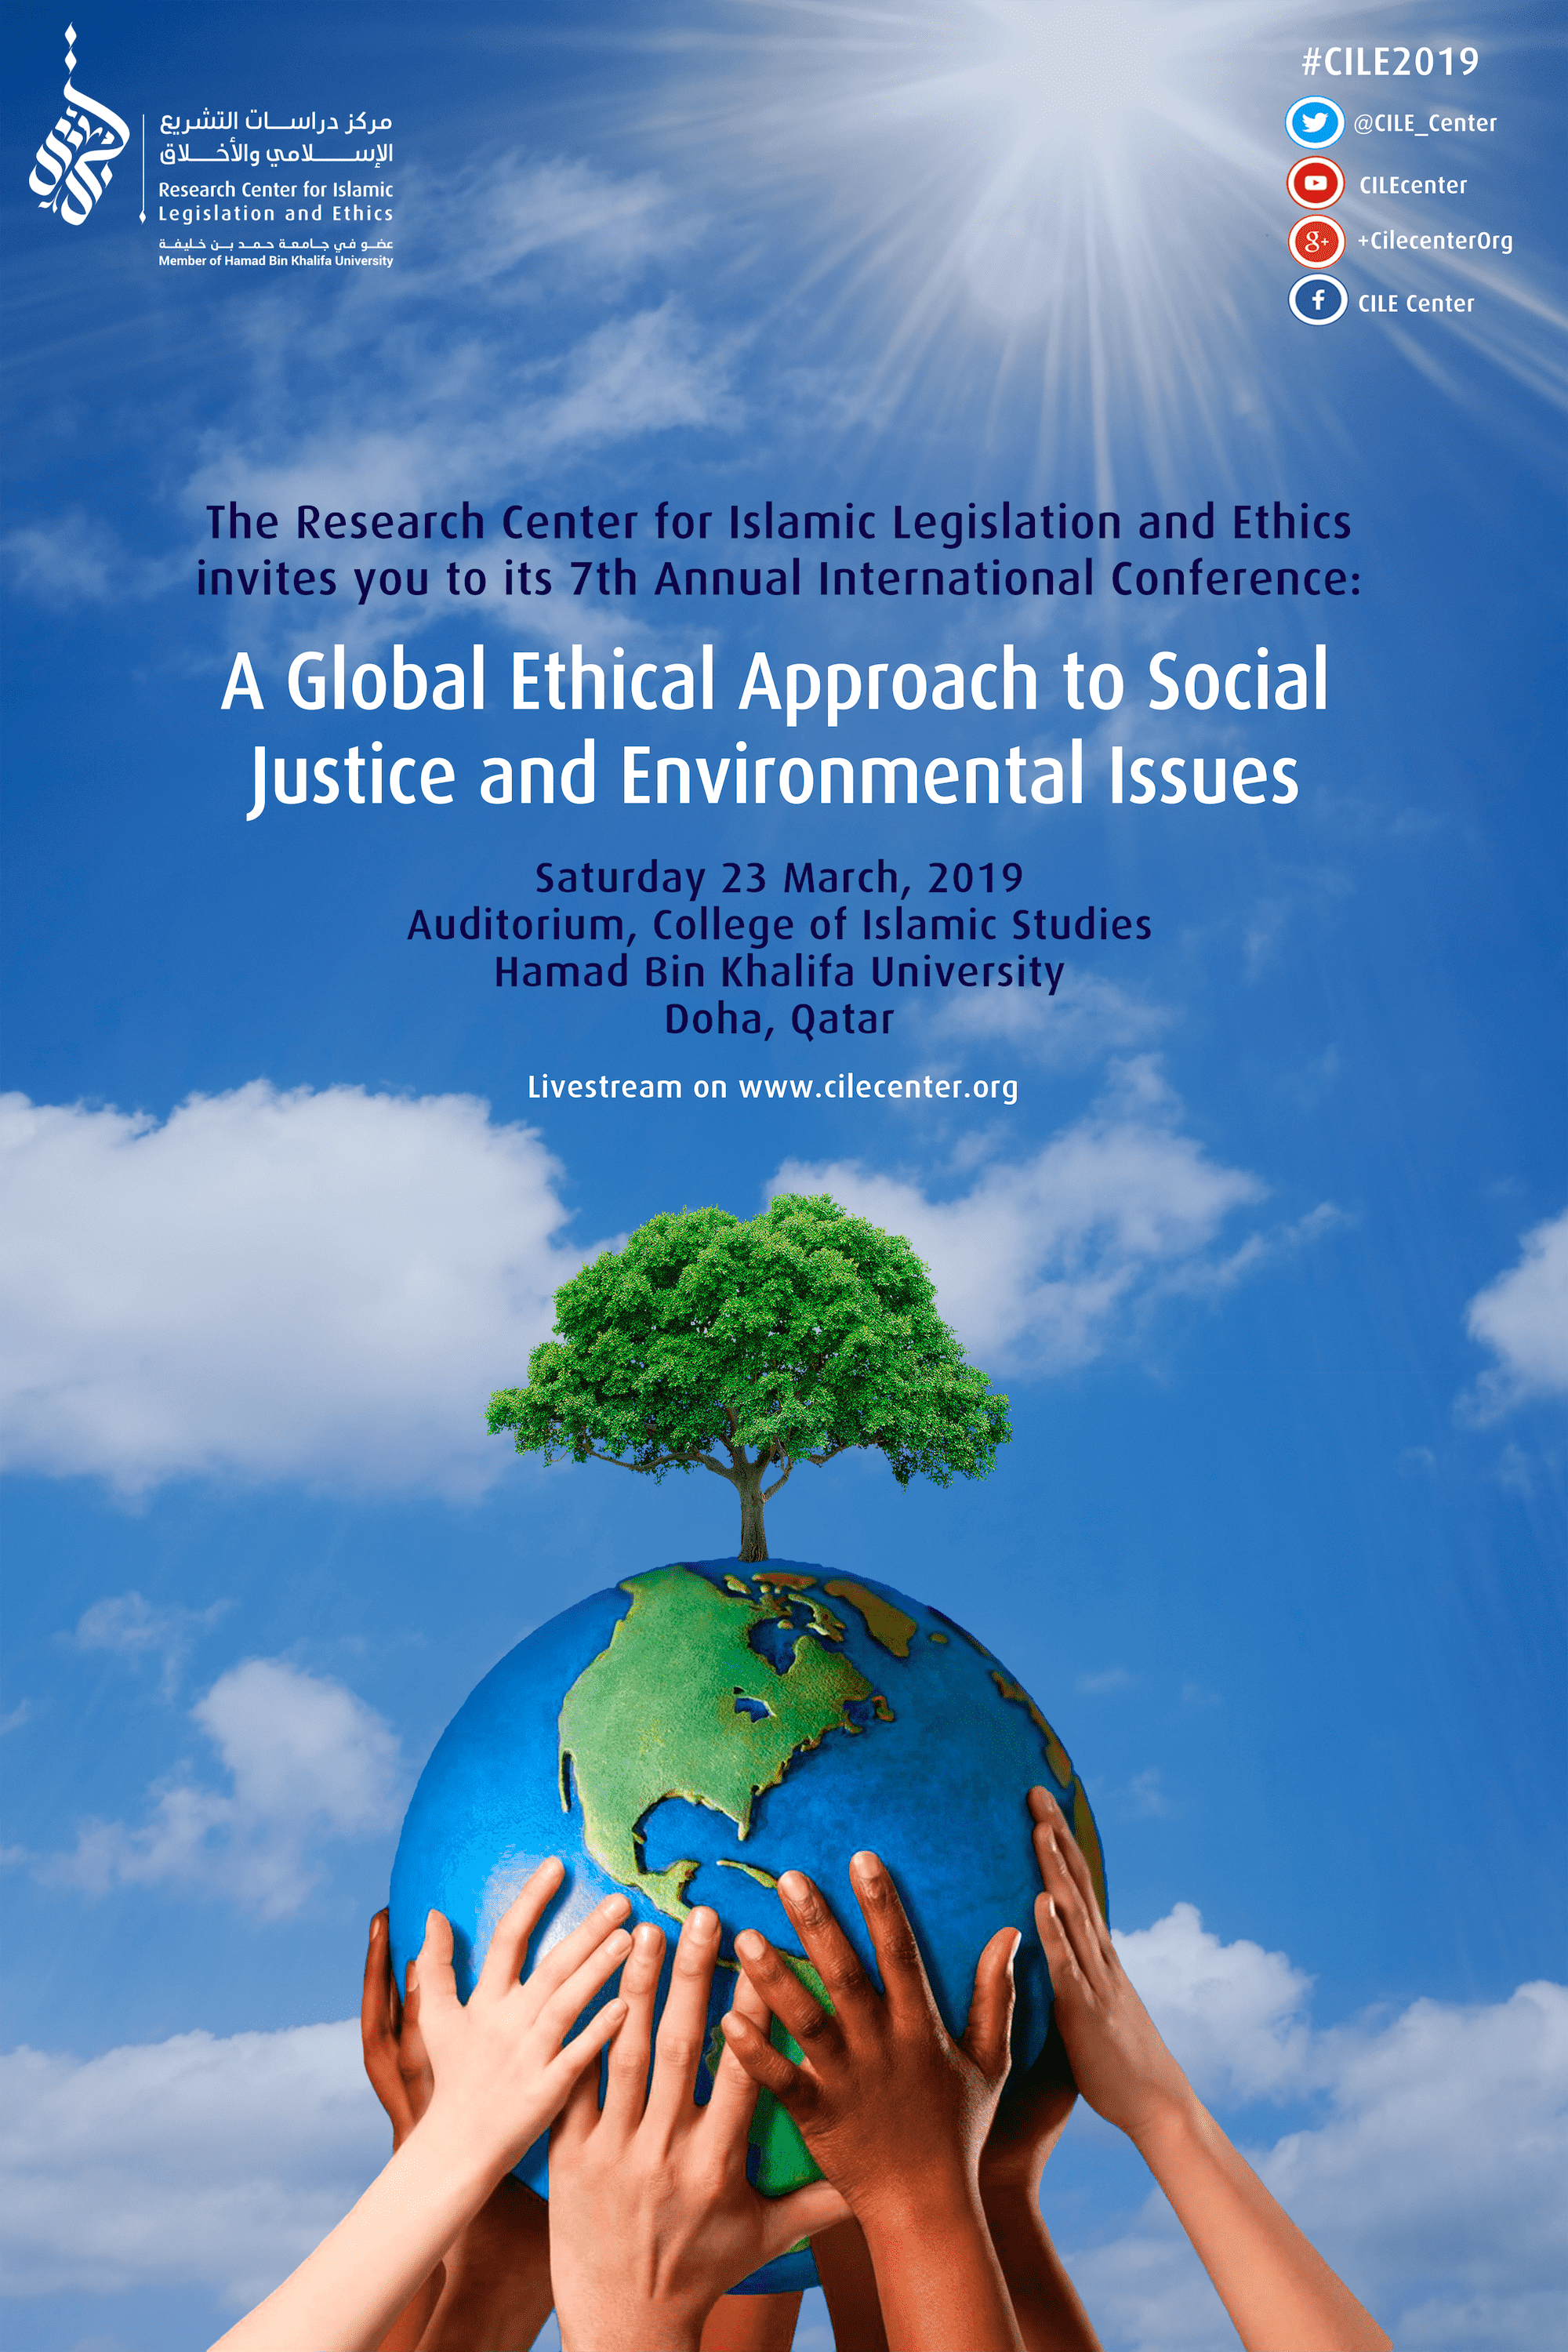 03/2019 A Global Ethical Approach to Social Justice and Environmental Issues #CILE2019